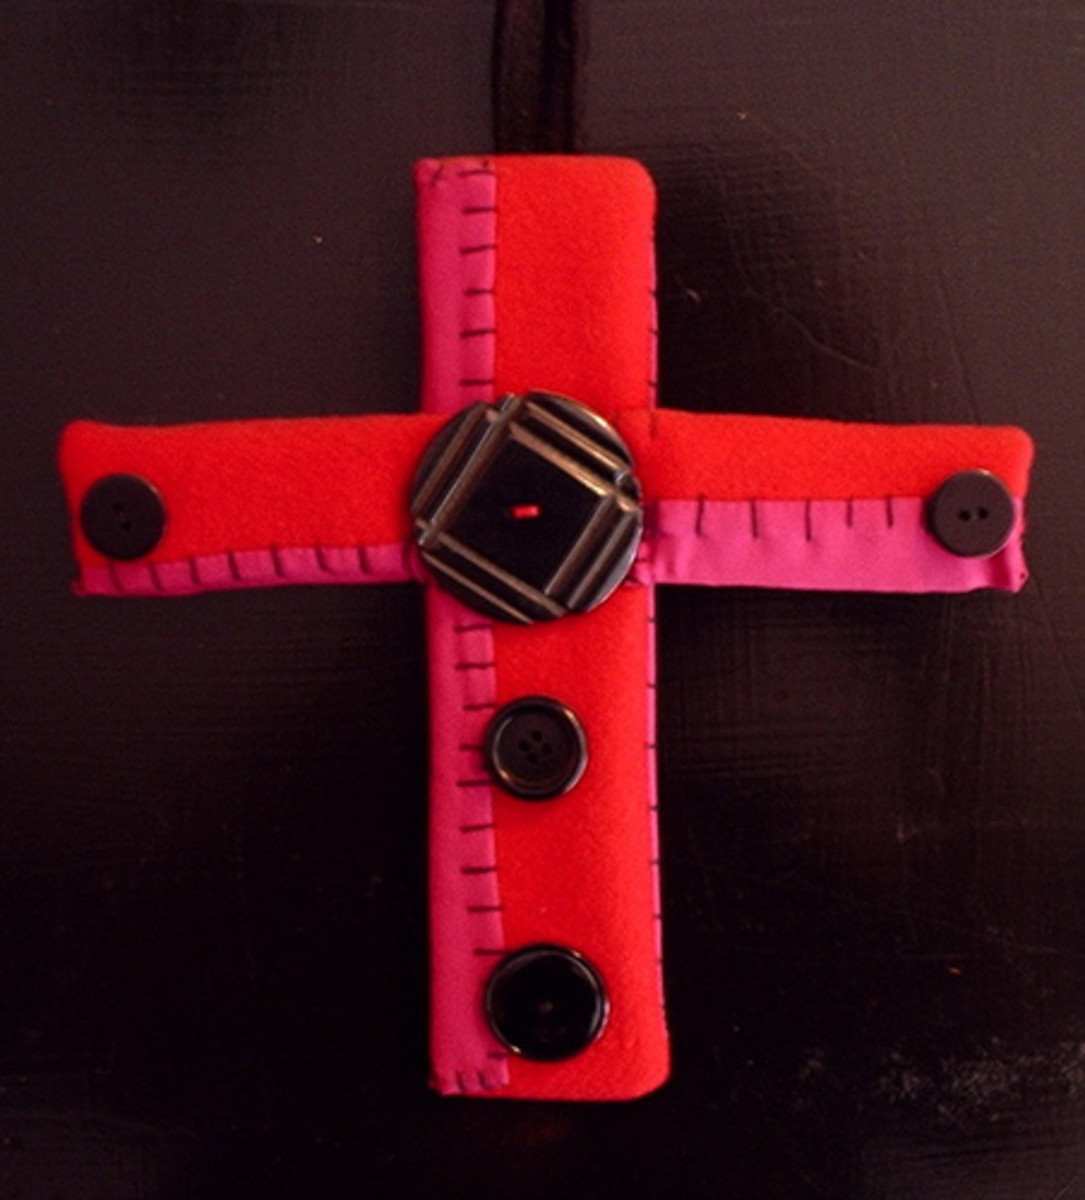 Buttons add a dimensional element to this simple cross.